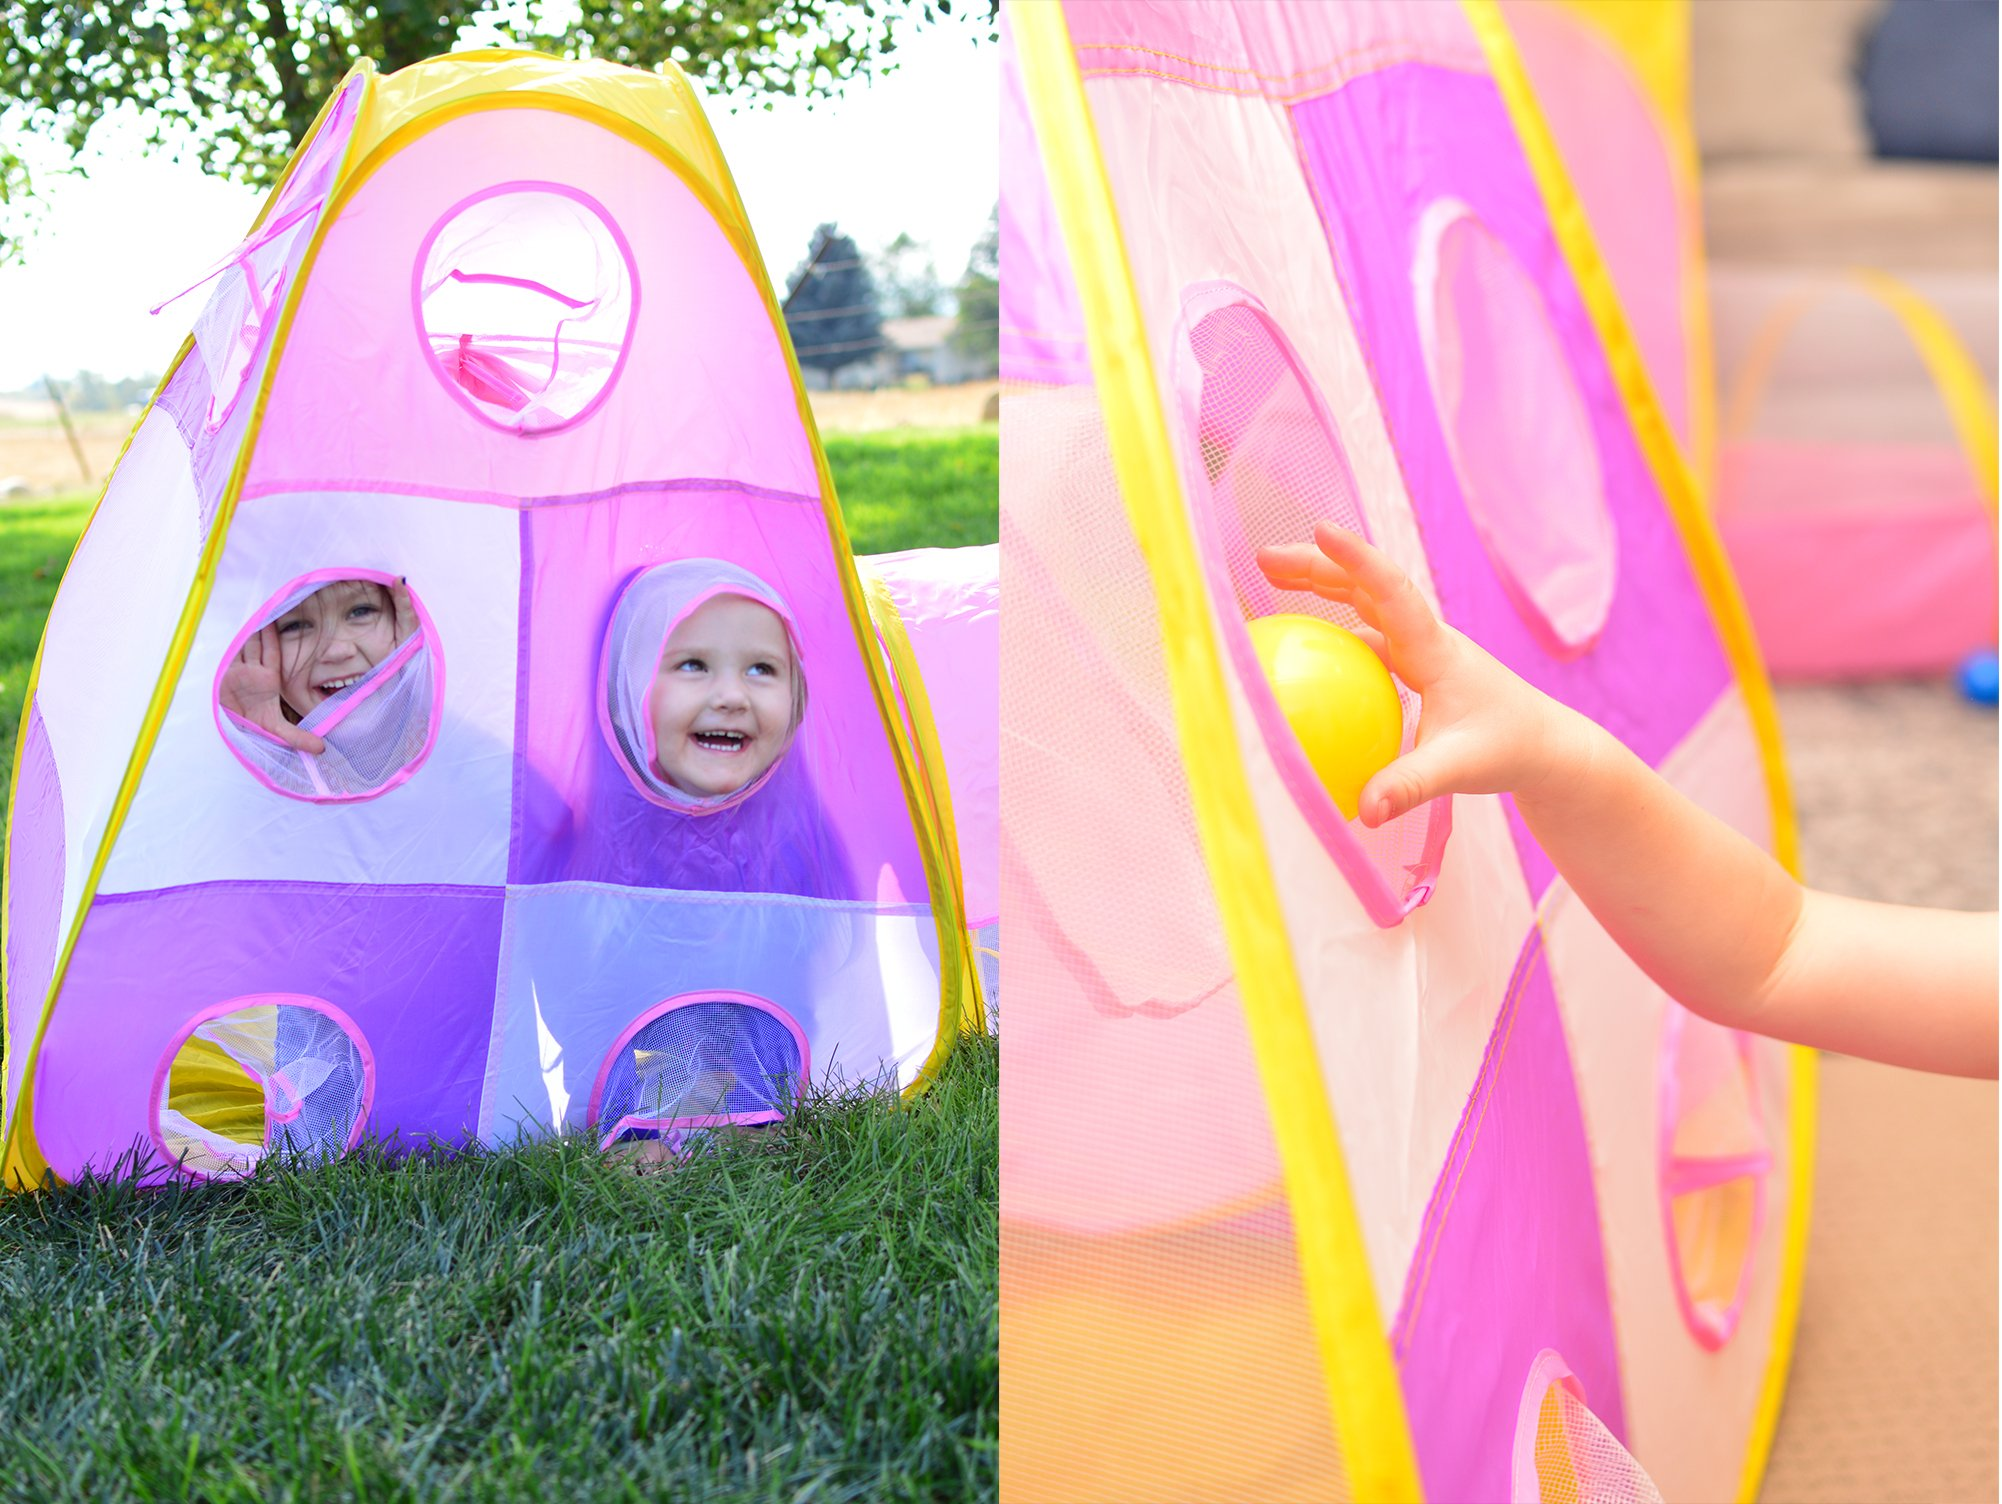 Playz 5pc Childrenu0027s Playhouse Popup Tents Tunnels ... & Playz 5pc Childrenu0027s Playhouse Popup Tents Tunnels and Basketball ...